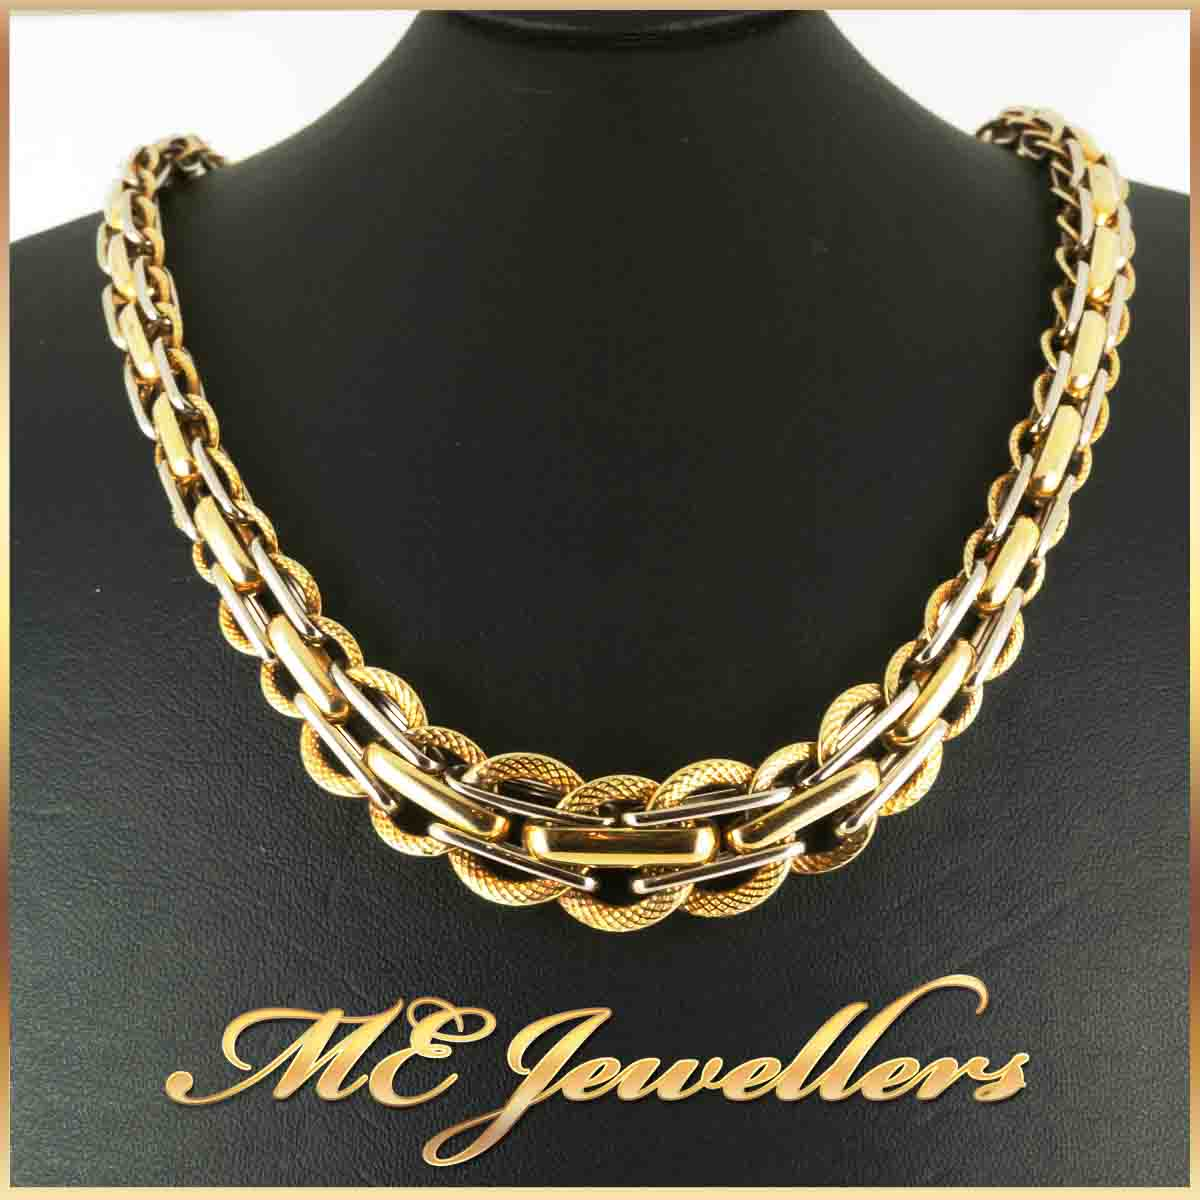 775_18K Gold Dress Necklace Textured Polished Detail 43.5cm 1